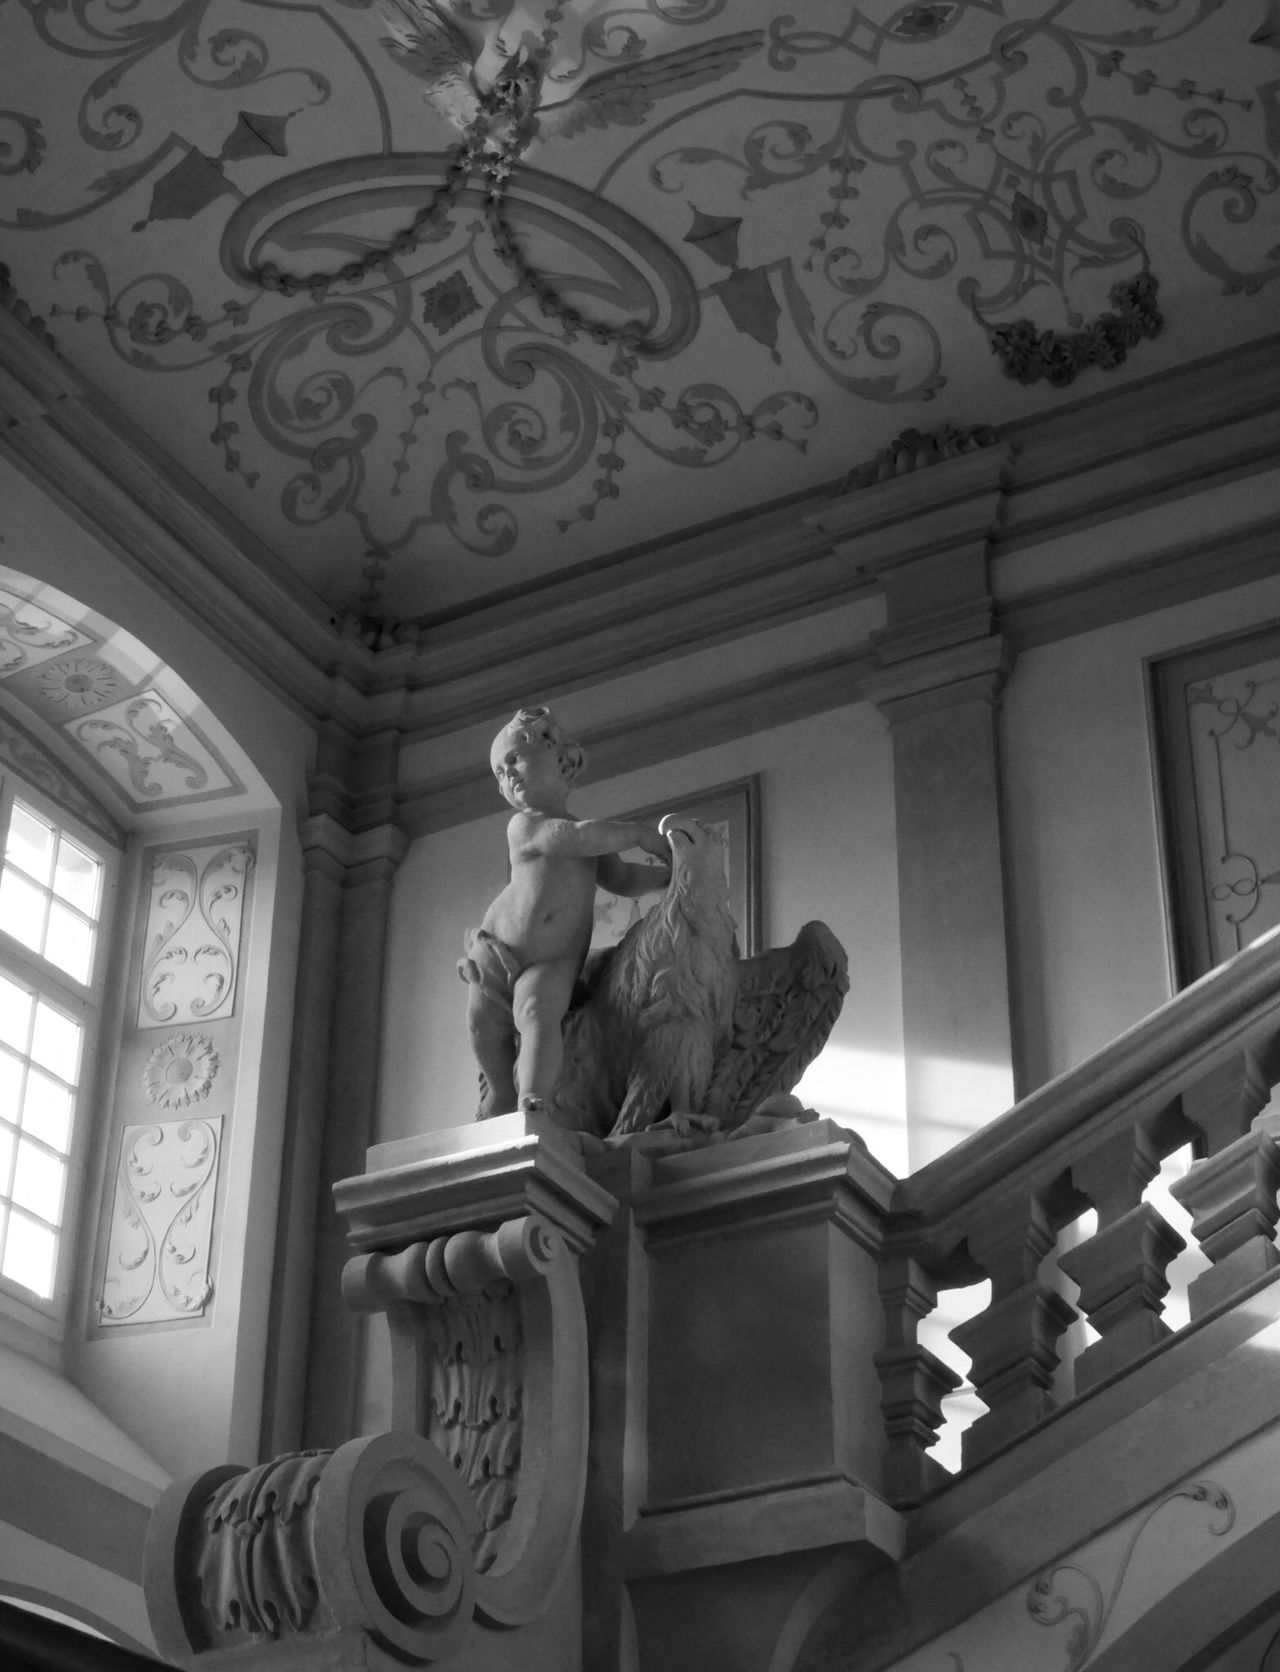 Pictures of Melk Abbey Architecture Architecture_bw Art Barock Blackandwhite Church Historical Building Medieval Monochrome Museum Staircase Stairs